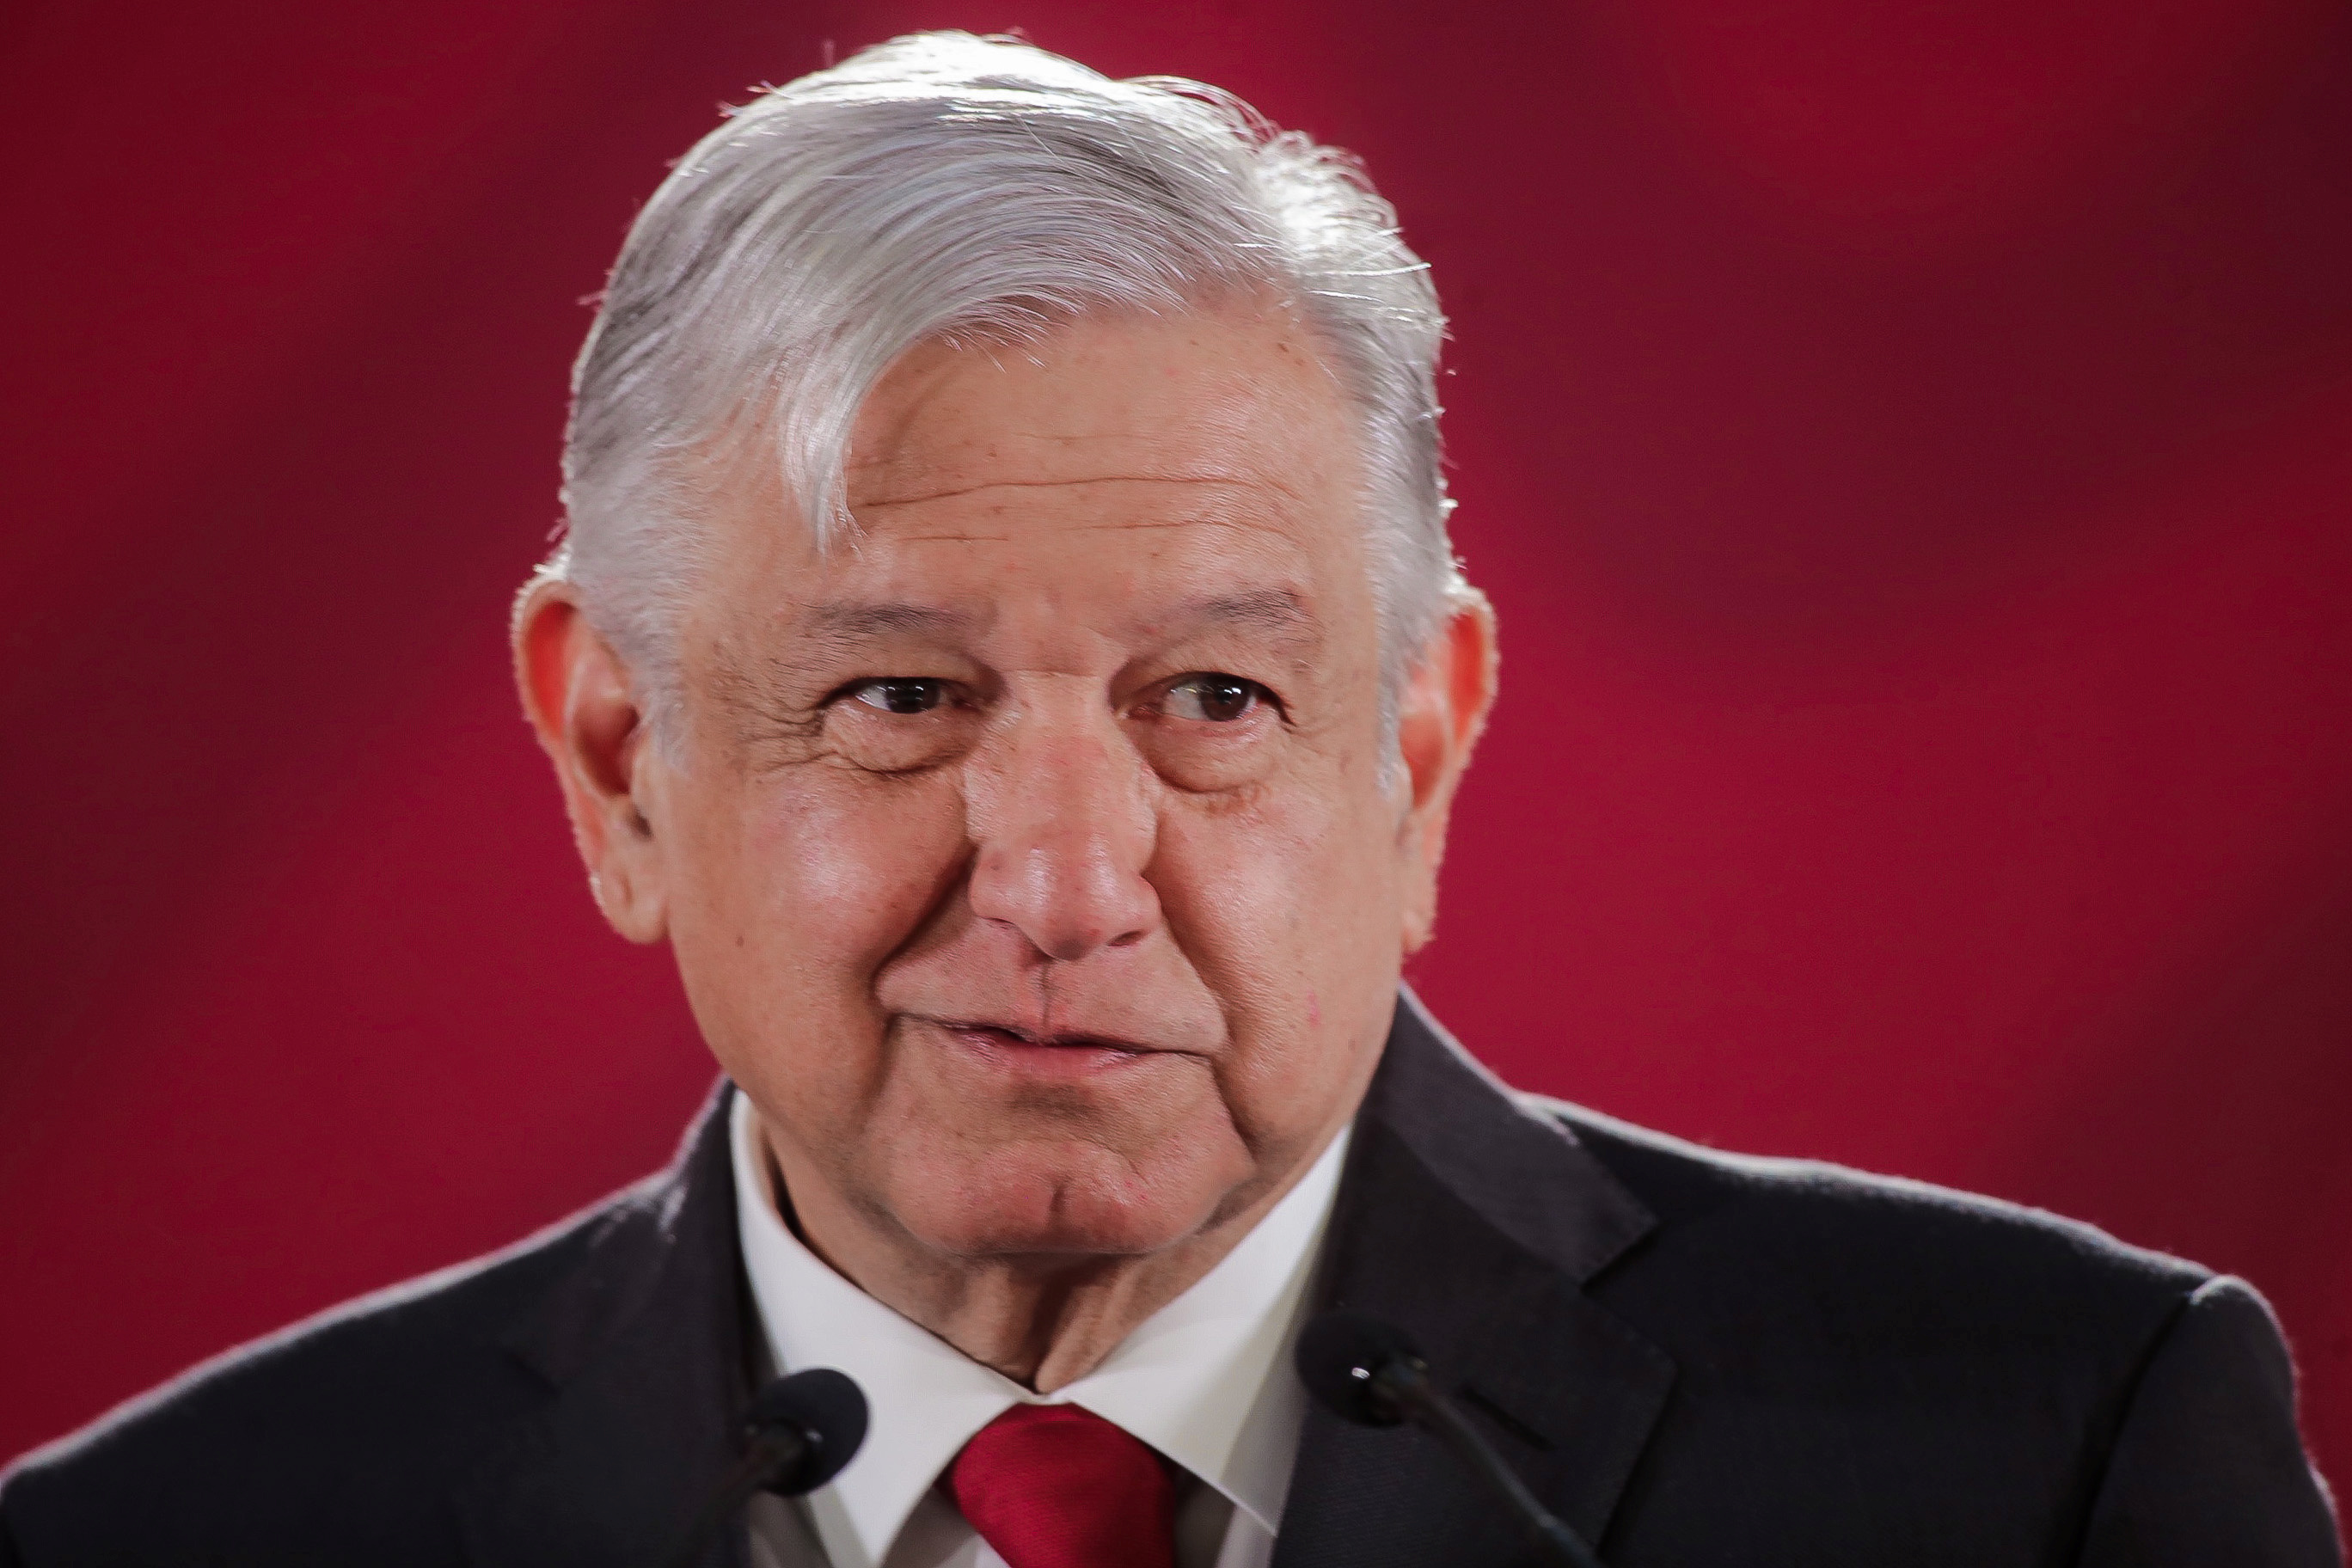 Mexican president says debt of state oil firm Pemex will not grow